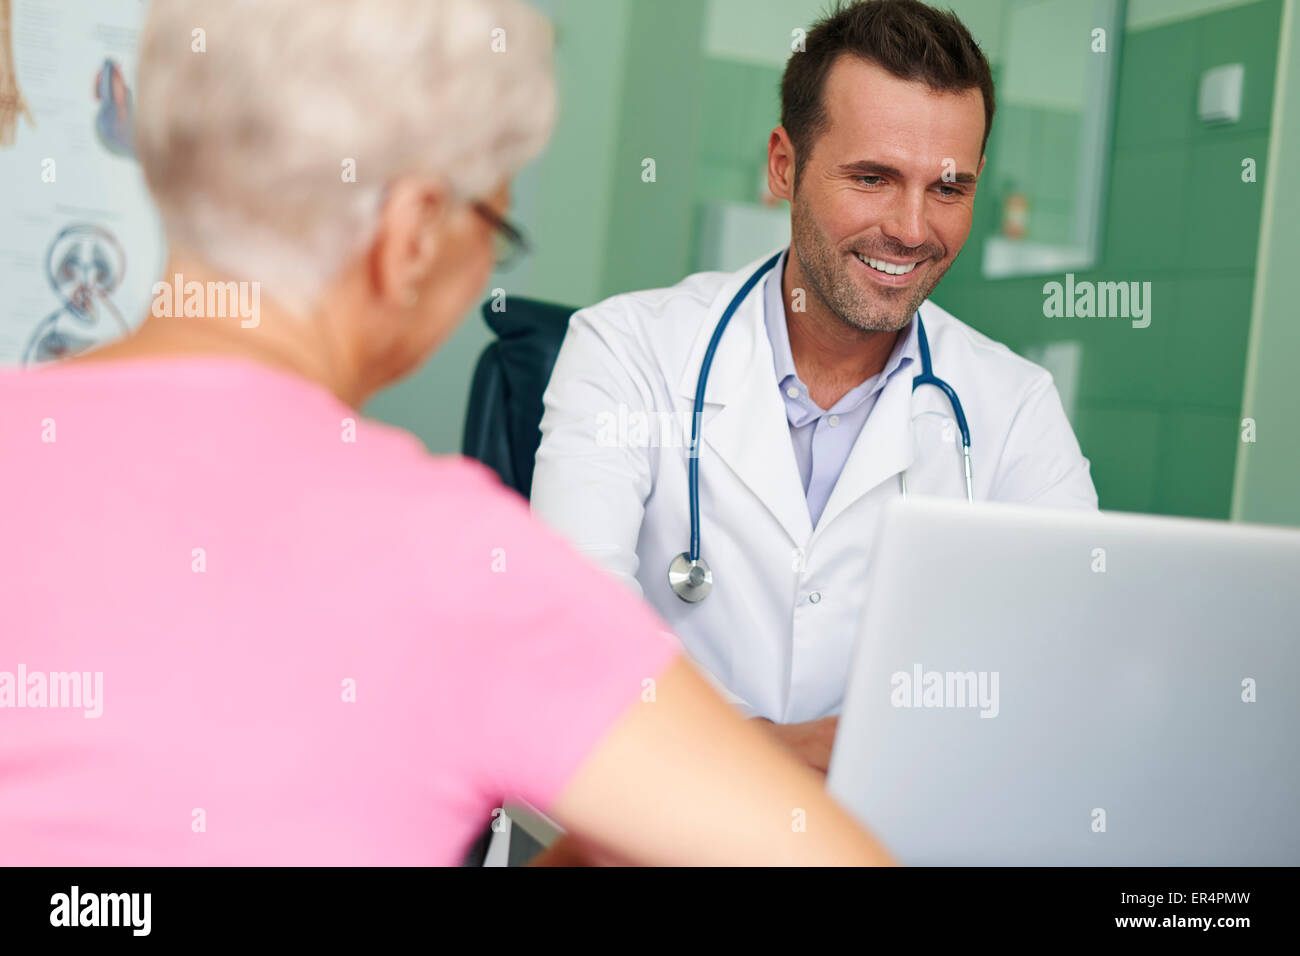 Visits in this doctor always are pleasure. Debica, Poland - Stock Image